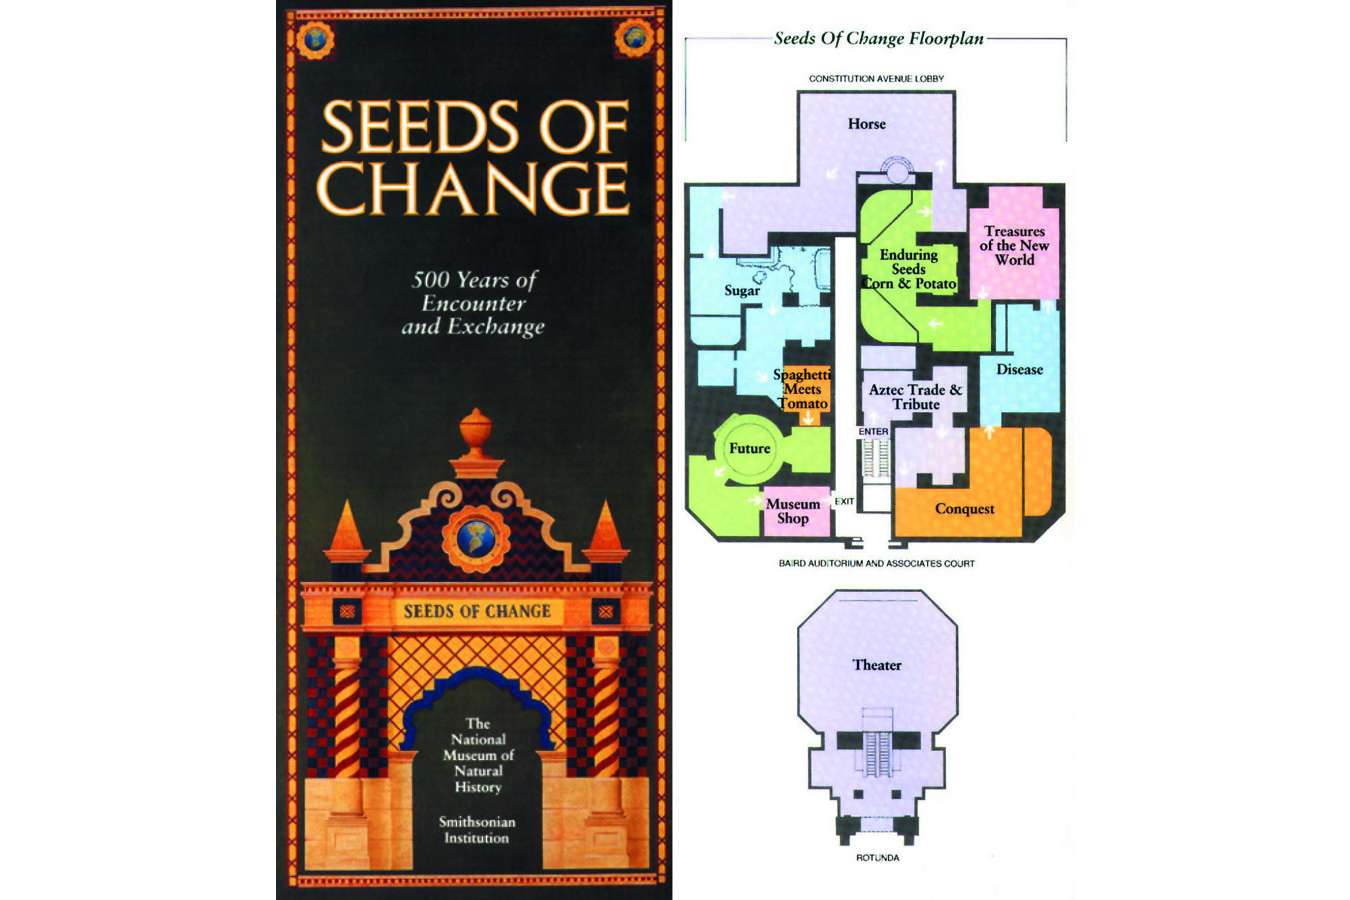 seeds guide : Exhibit guide showing layout of thematic areas